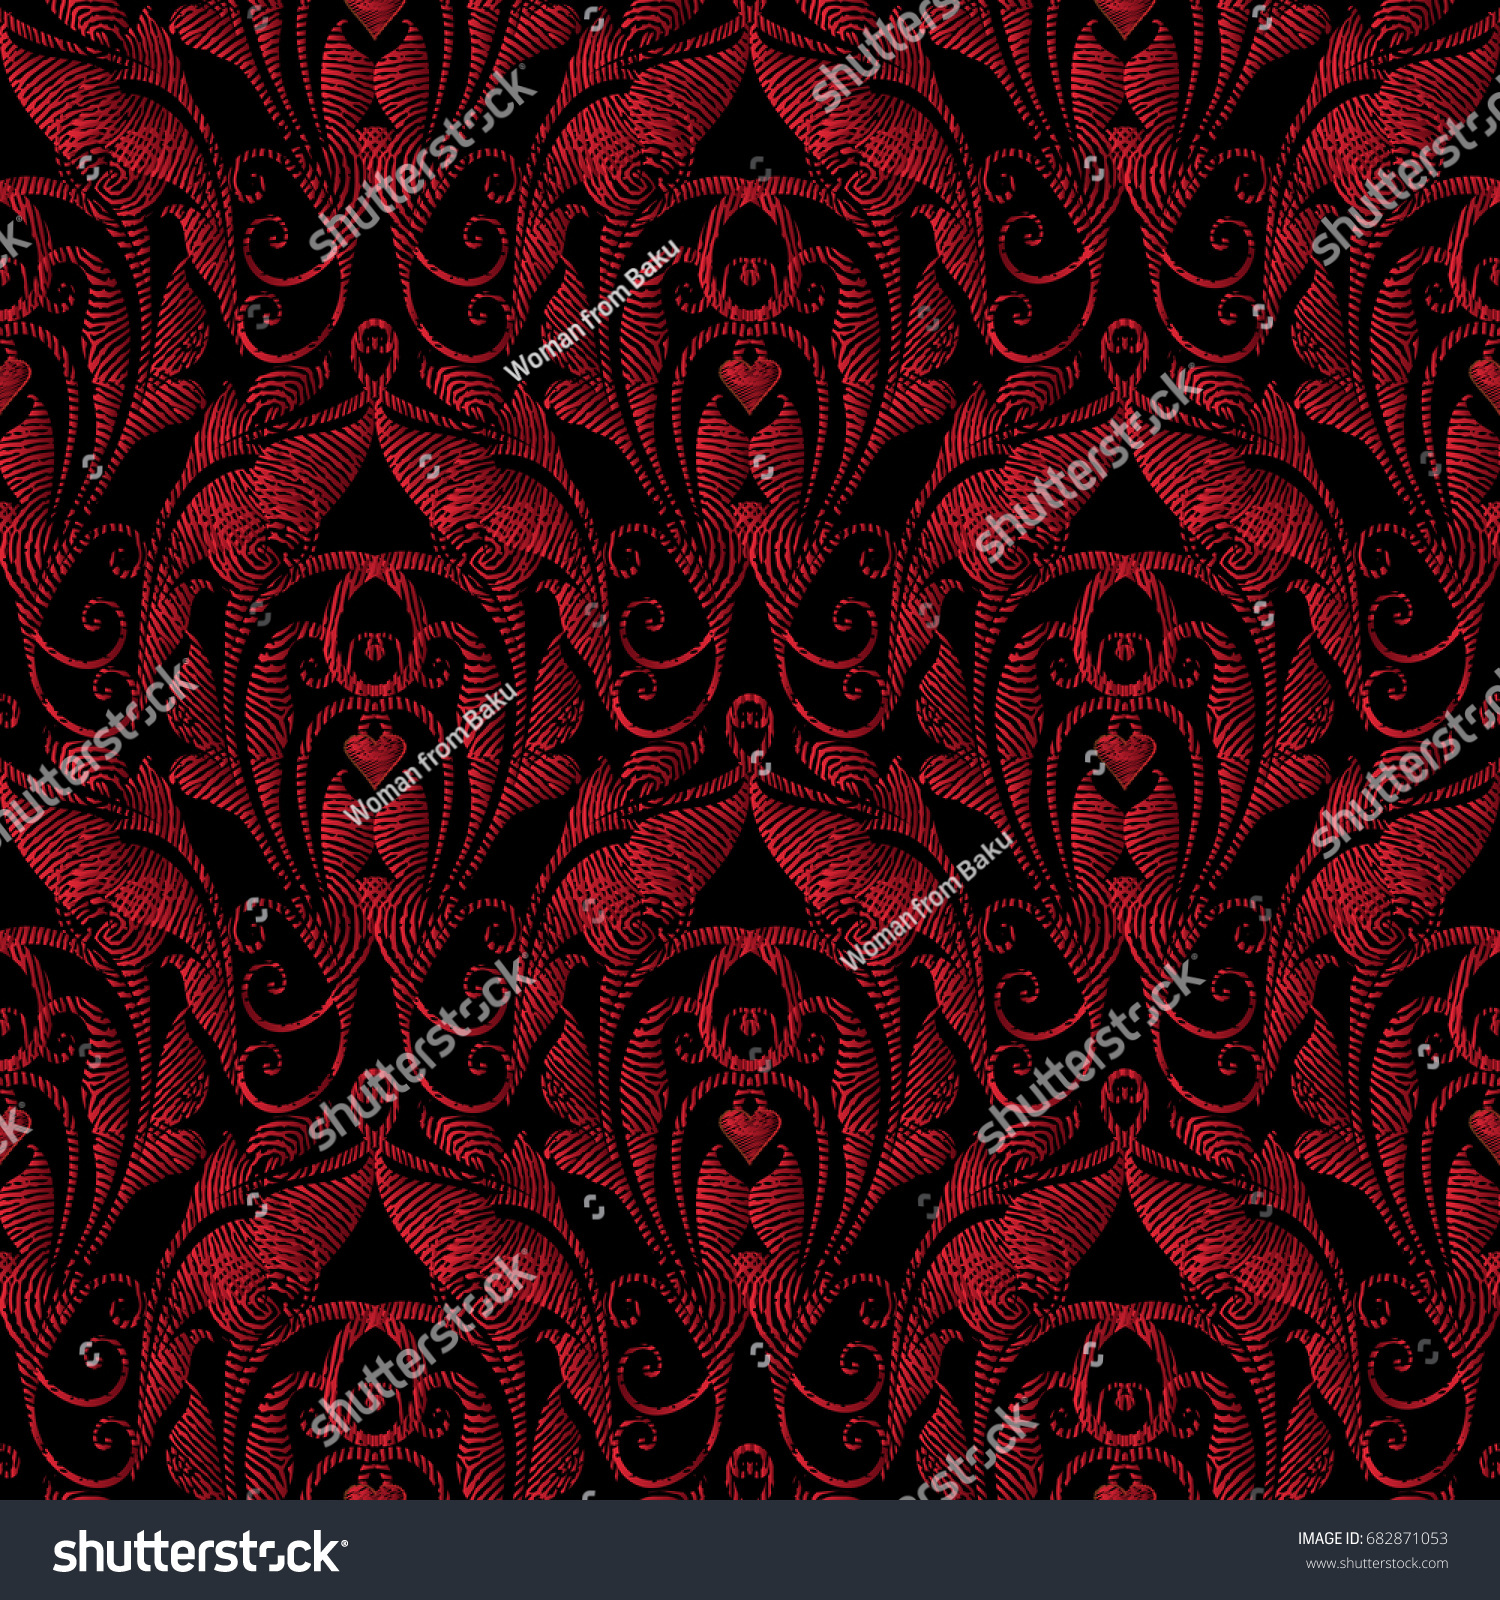 Tapestry Seamless Pattern Floral Black Background 682871053